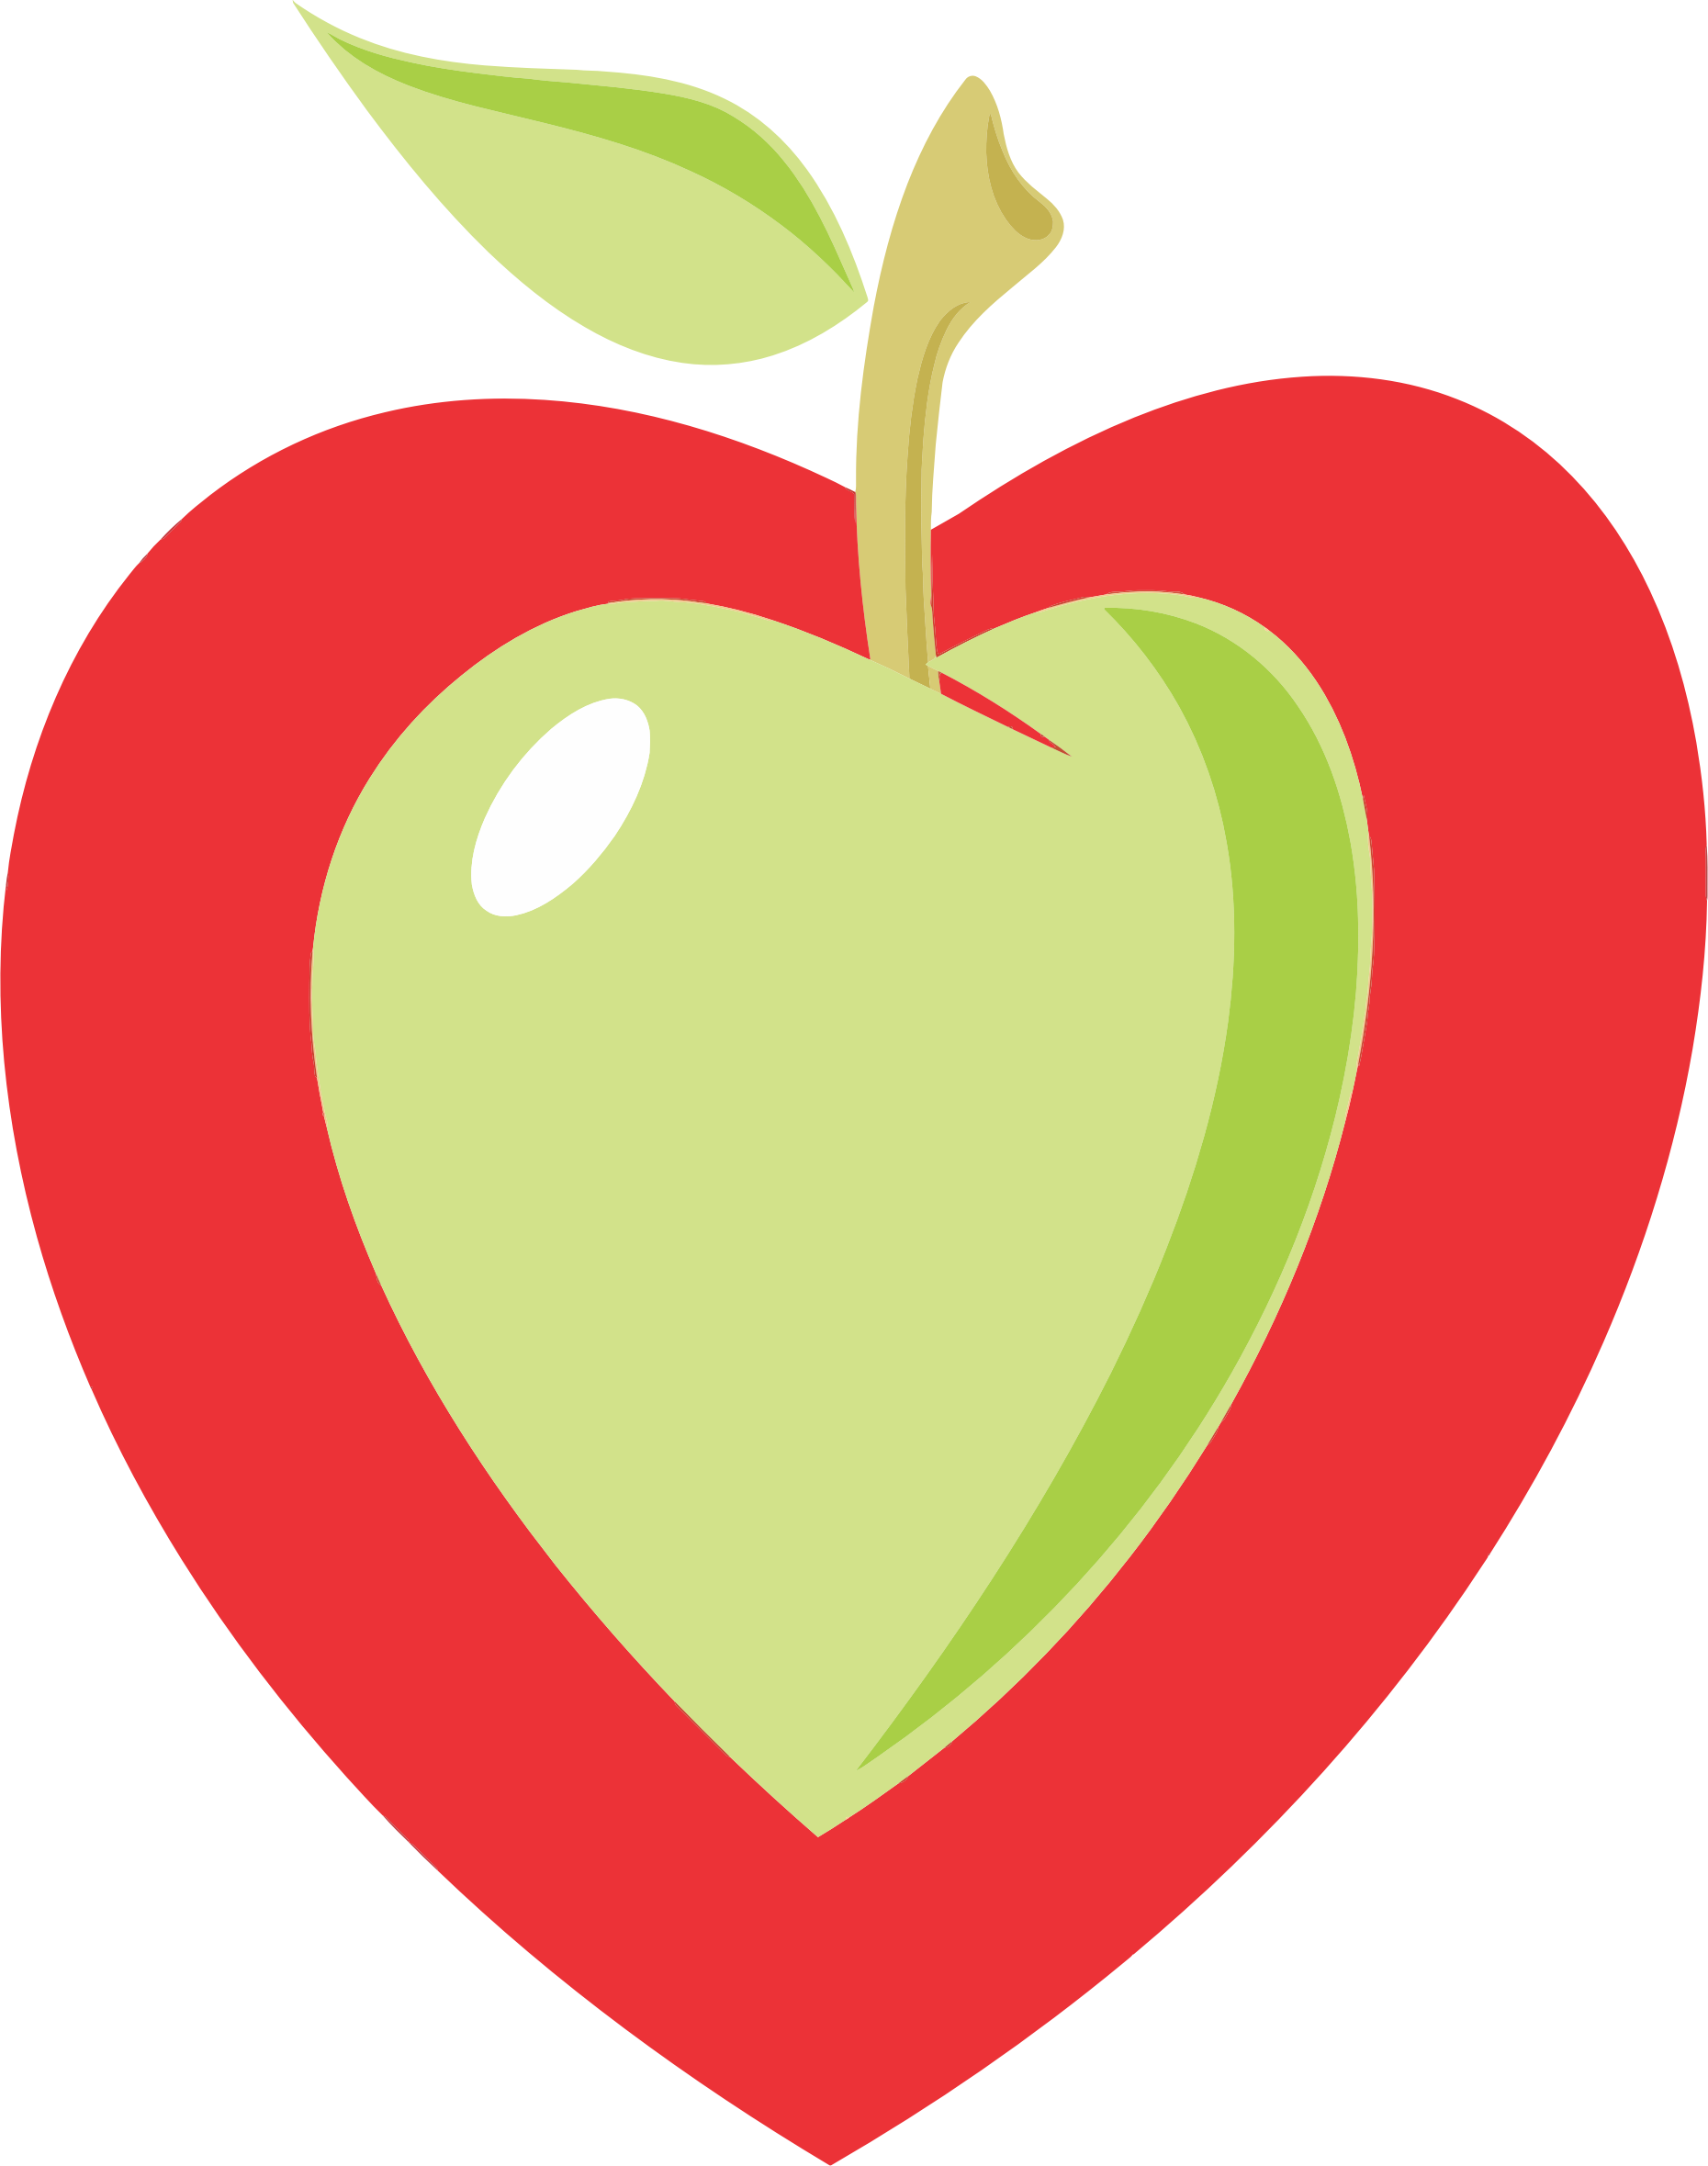 Heart Apple by GDJ